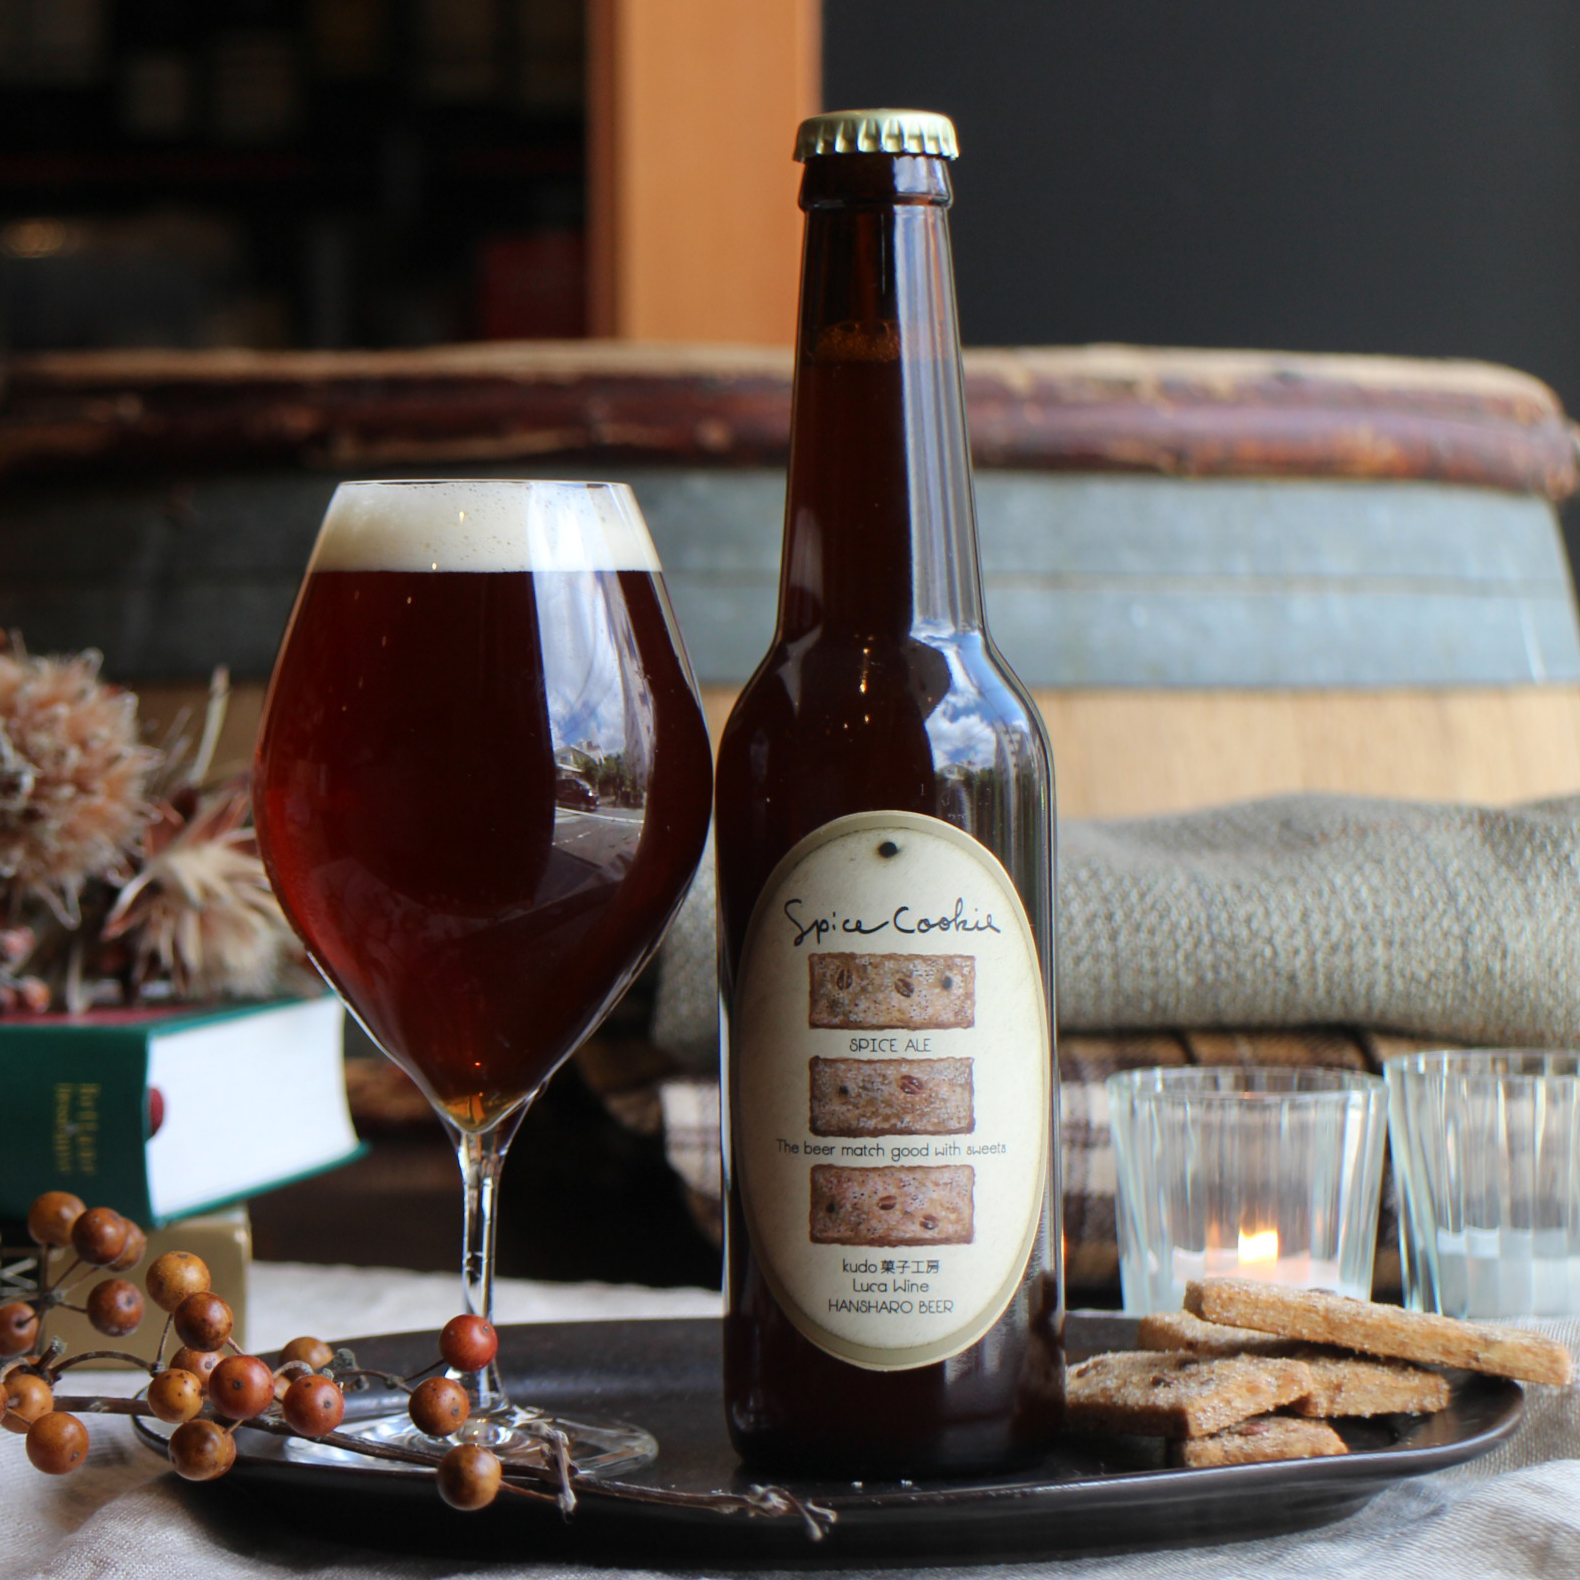 Spice Cookie Ale